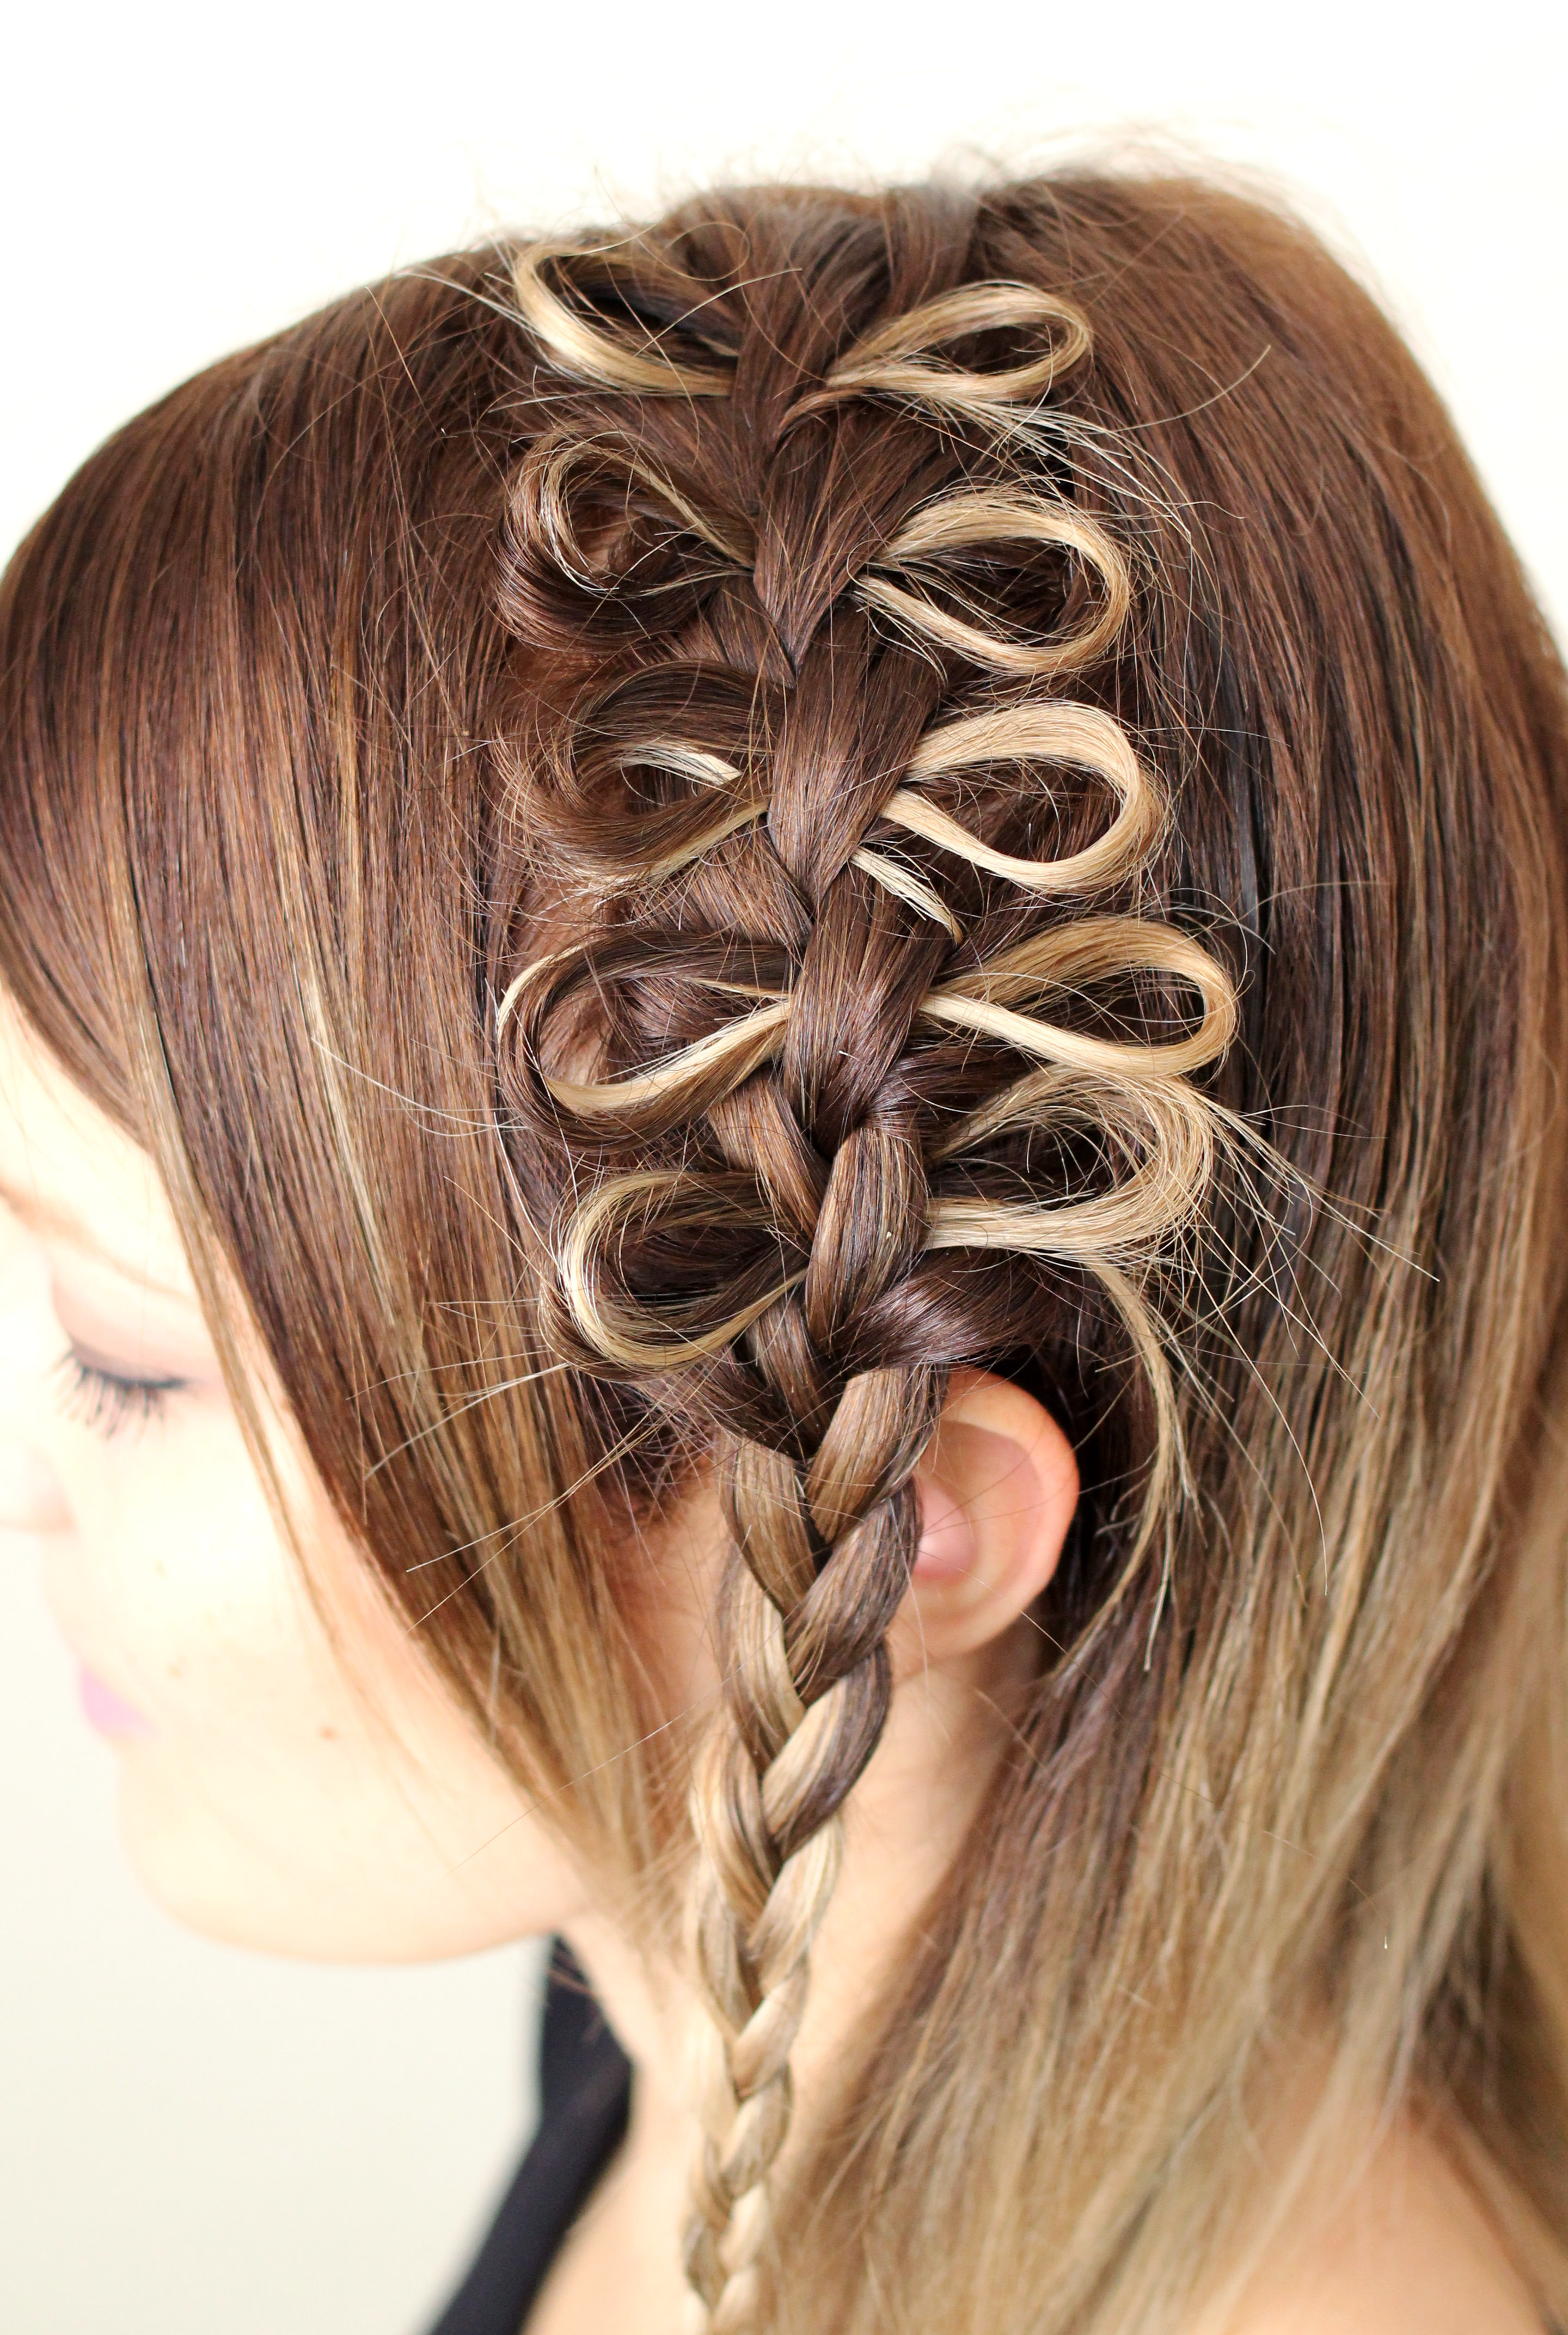 Remarkable How To Style A Bow Braid A Beautiful Mess Hairstyle Inspiration Daily Dogsangcom